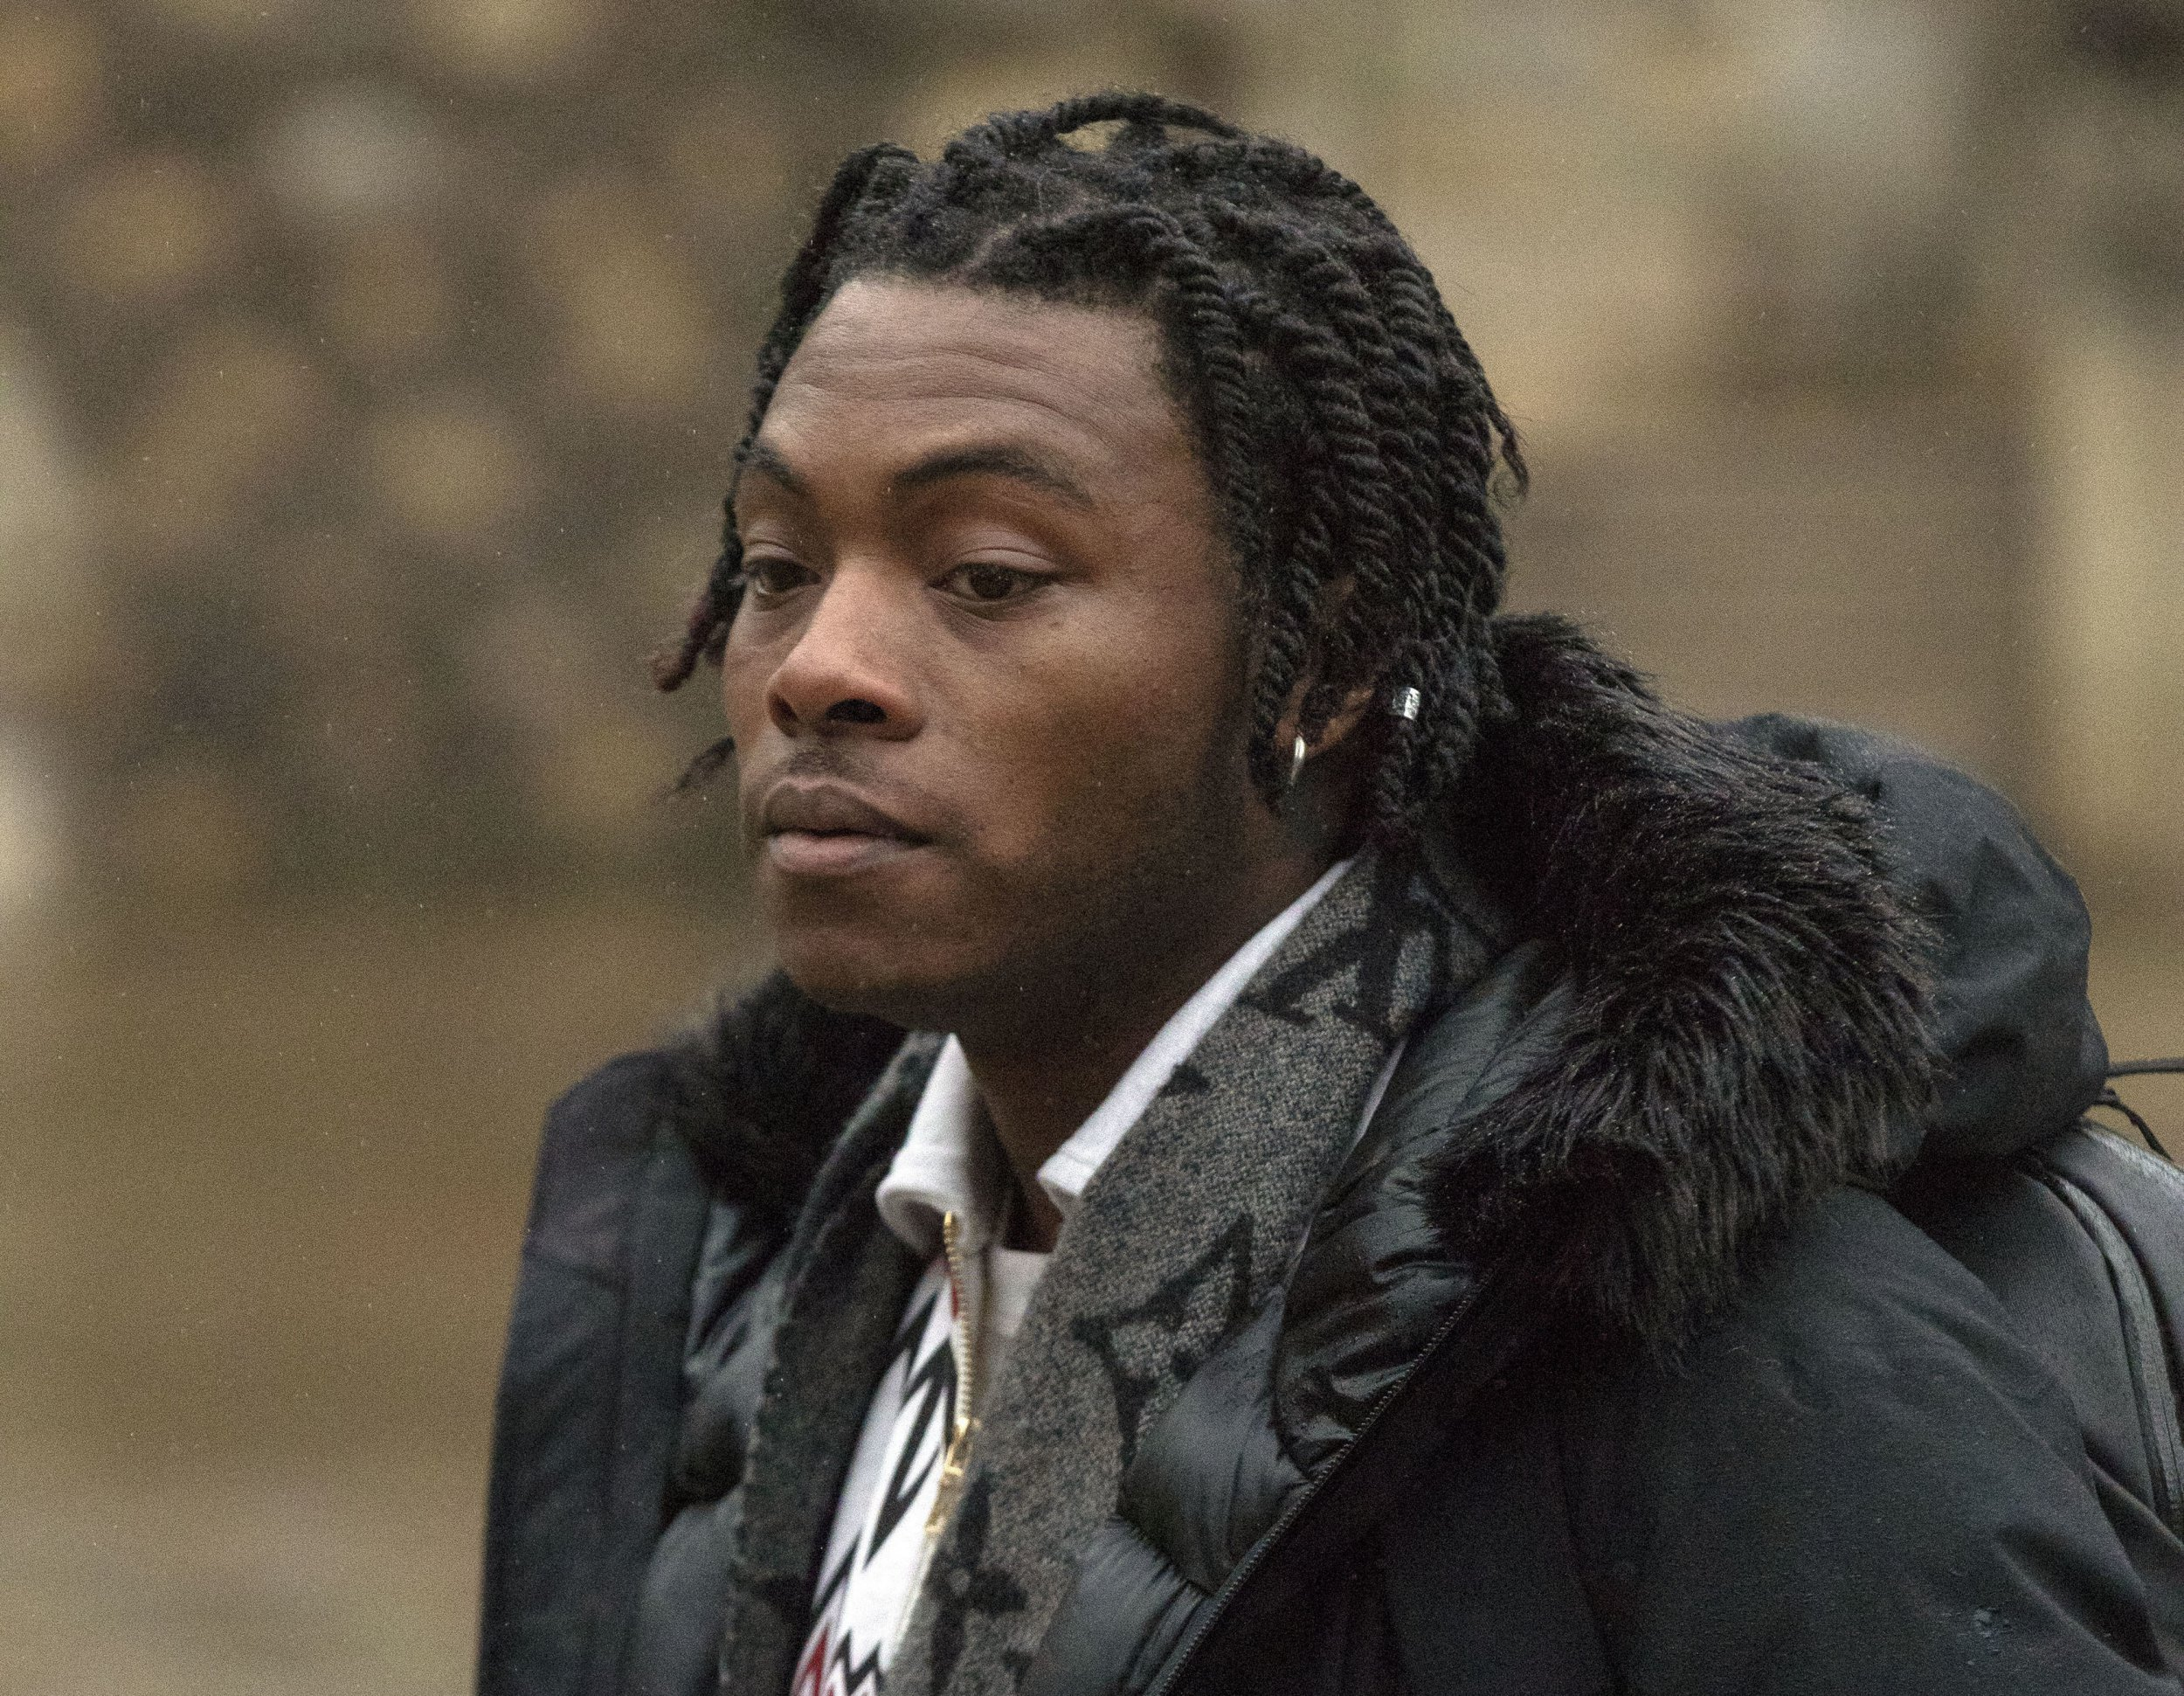 Ceon Broughton, 29, arrives at Winchester Crown Court where he is charged in connection with the death of Louella Fletcher-Michie. PRESS ASSOCIATION Photo. Picture date: Monday February 4, 2019. The daughter of Holby City actor John Michie died after taking the party drug 2CP at the Bestival music festival in Dorset on September 11, 2017. See PA story COURTS Bestival. Photo credit should read: Steve Parsons/PA Wire